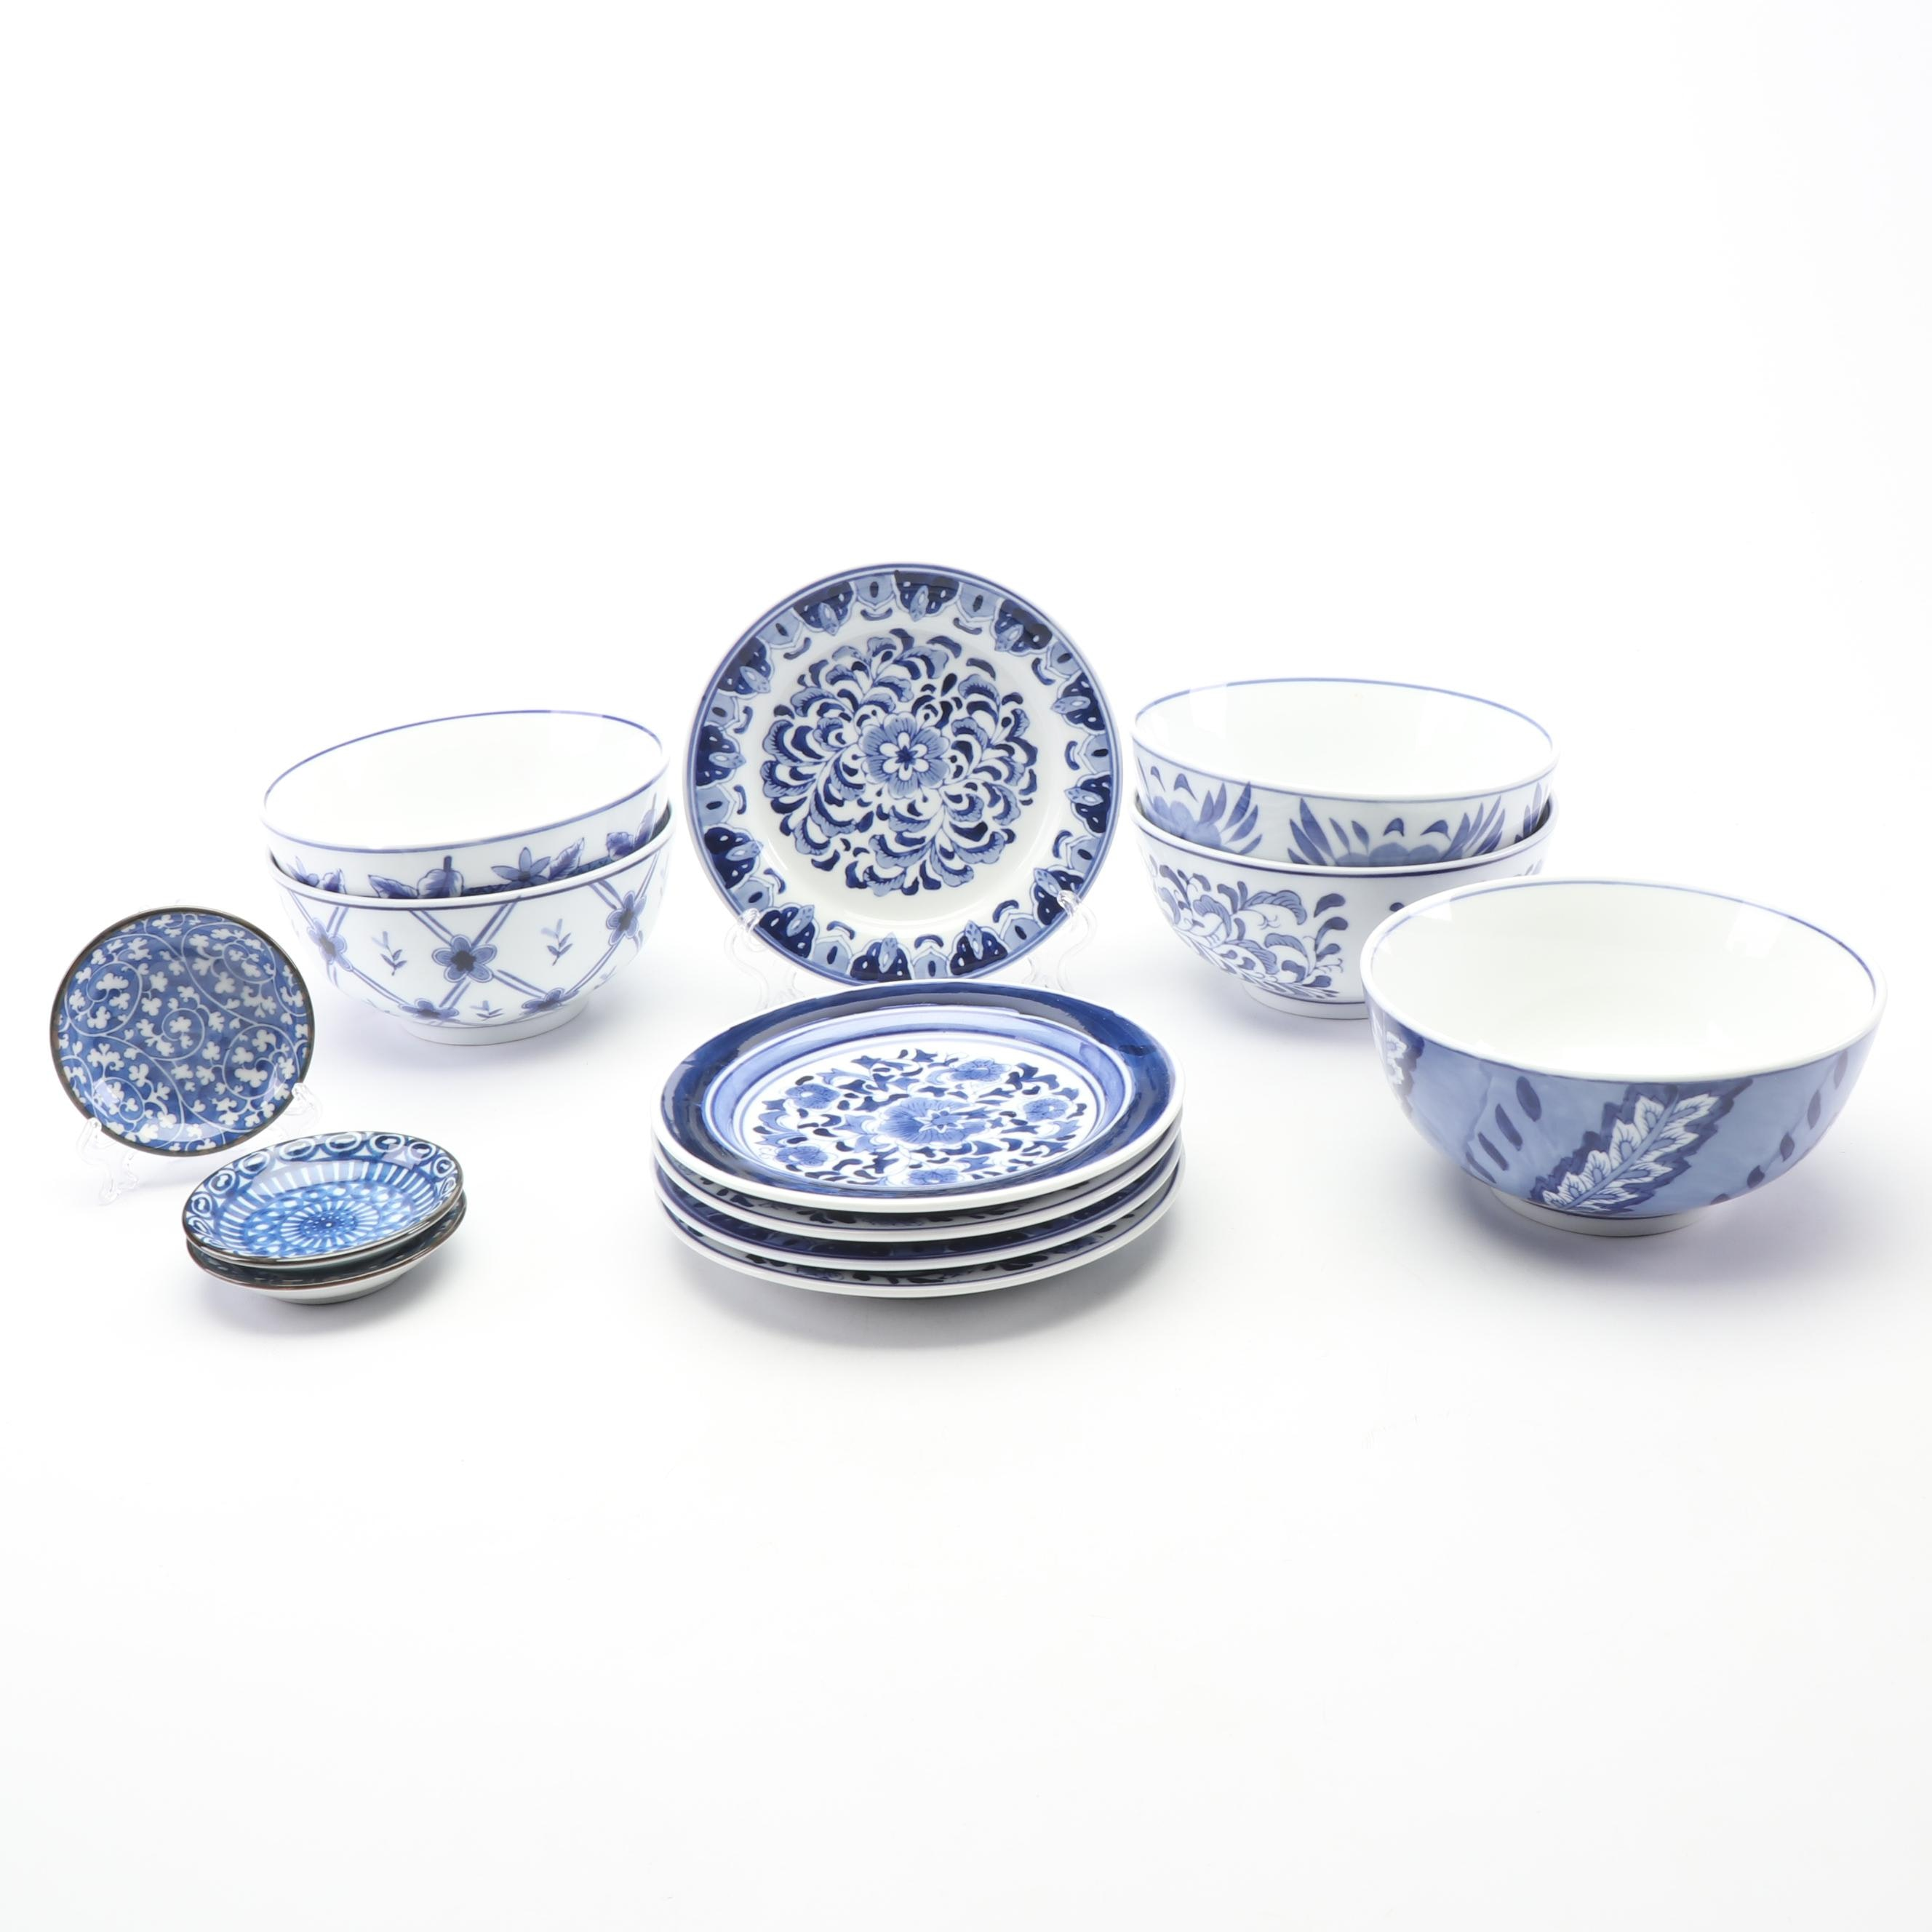 Contemporary Blue and White Ceramic Dinnerware